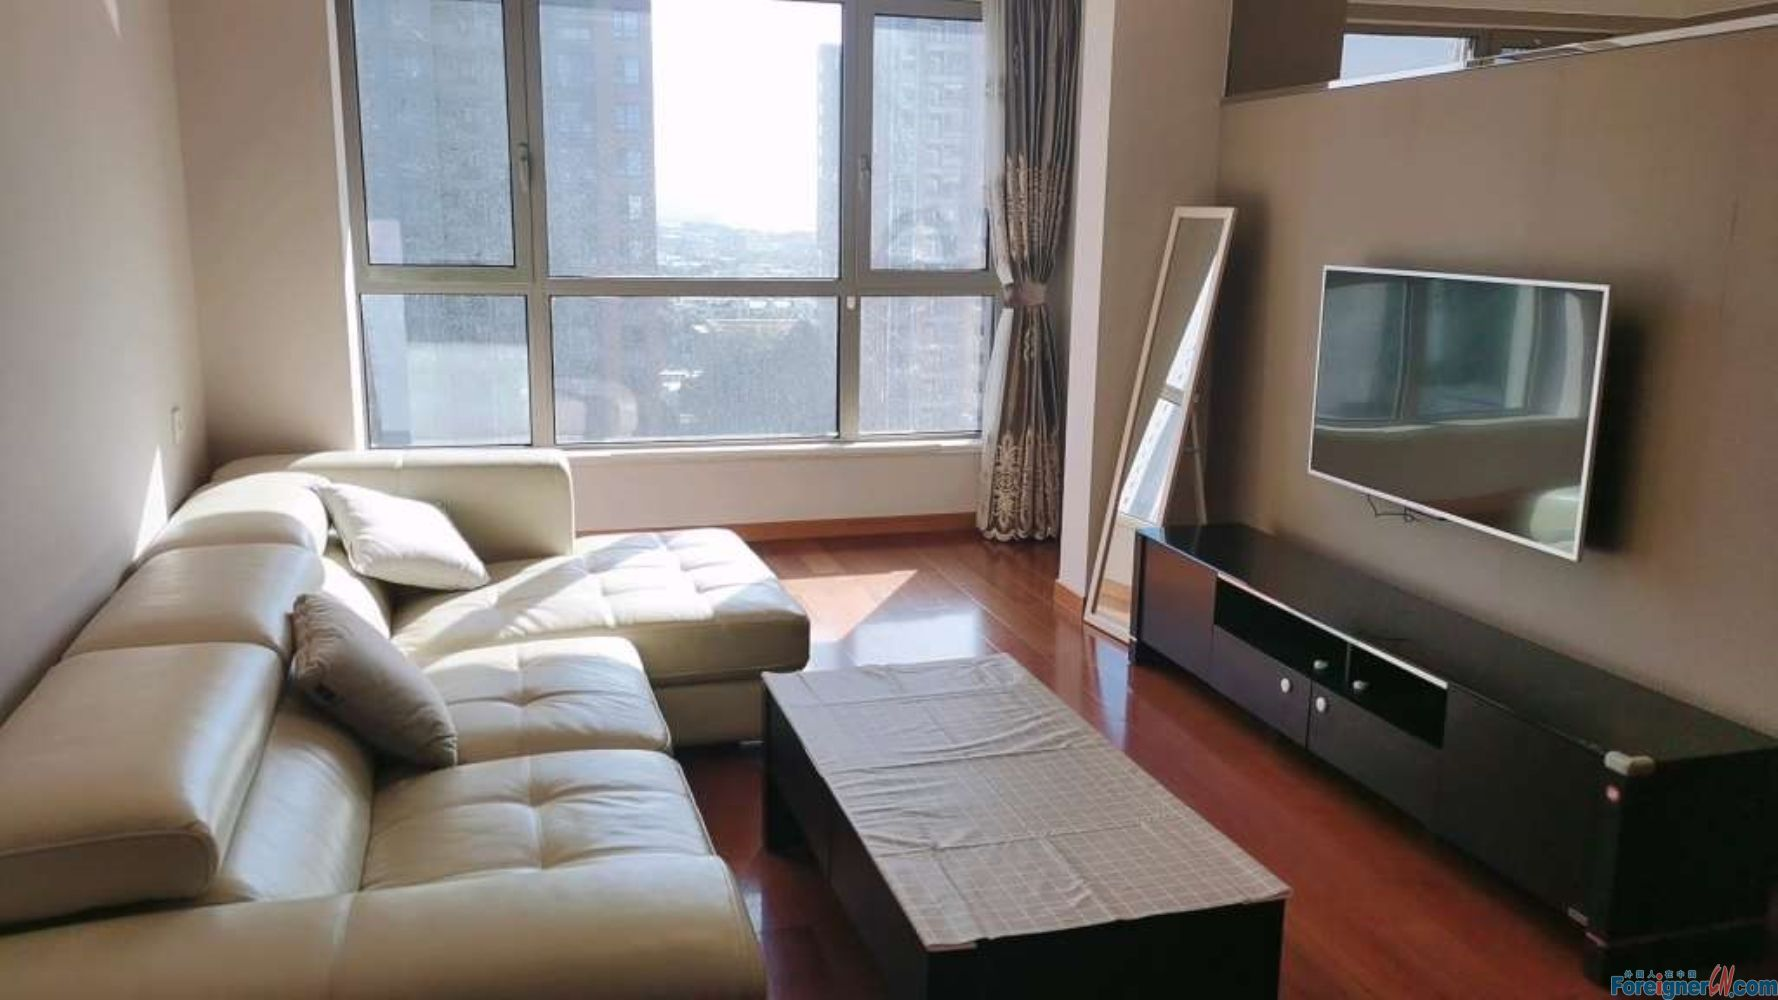 Search for an apartment in Suzhou-heated floor-oven- fully furniture- central AC-near metro -bright